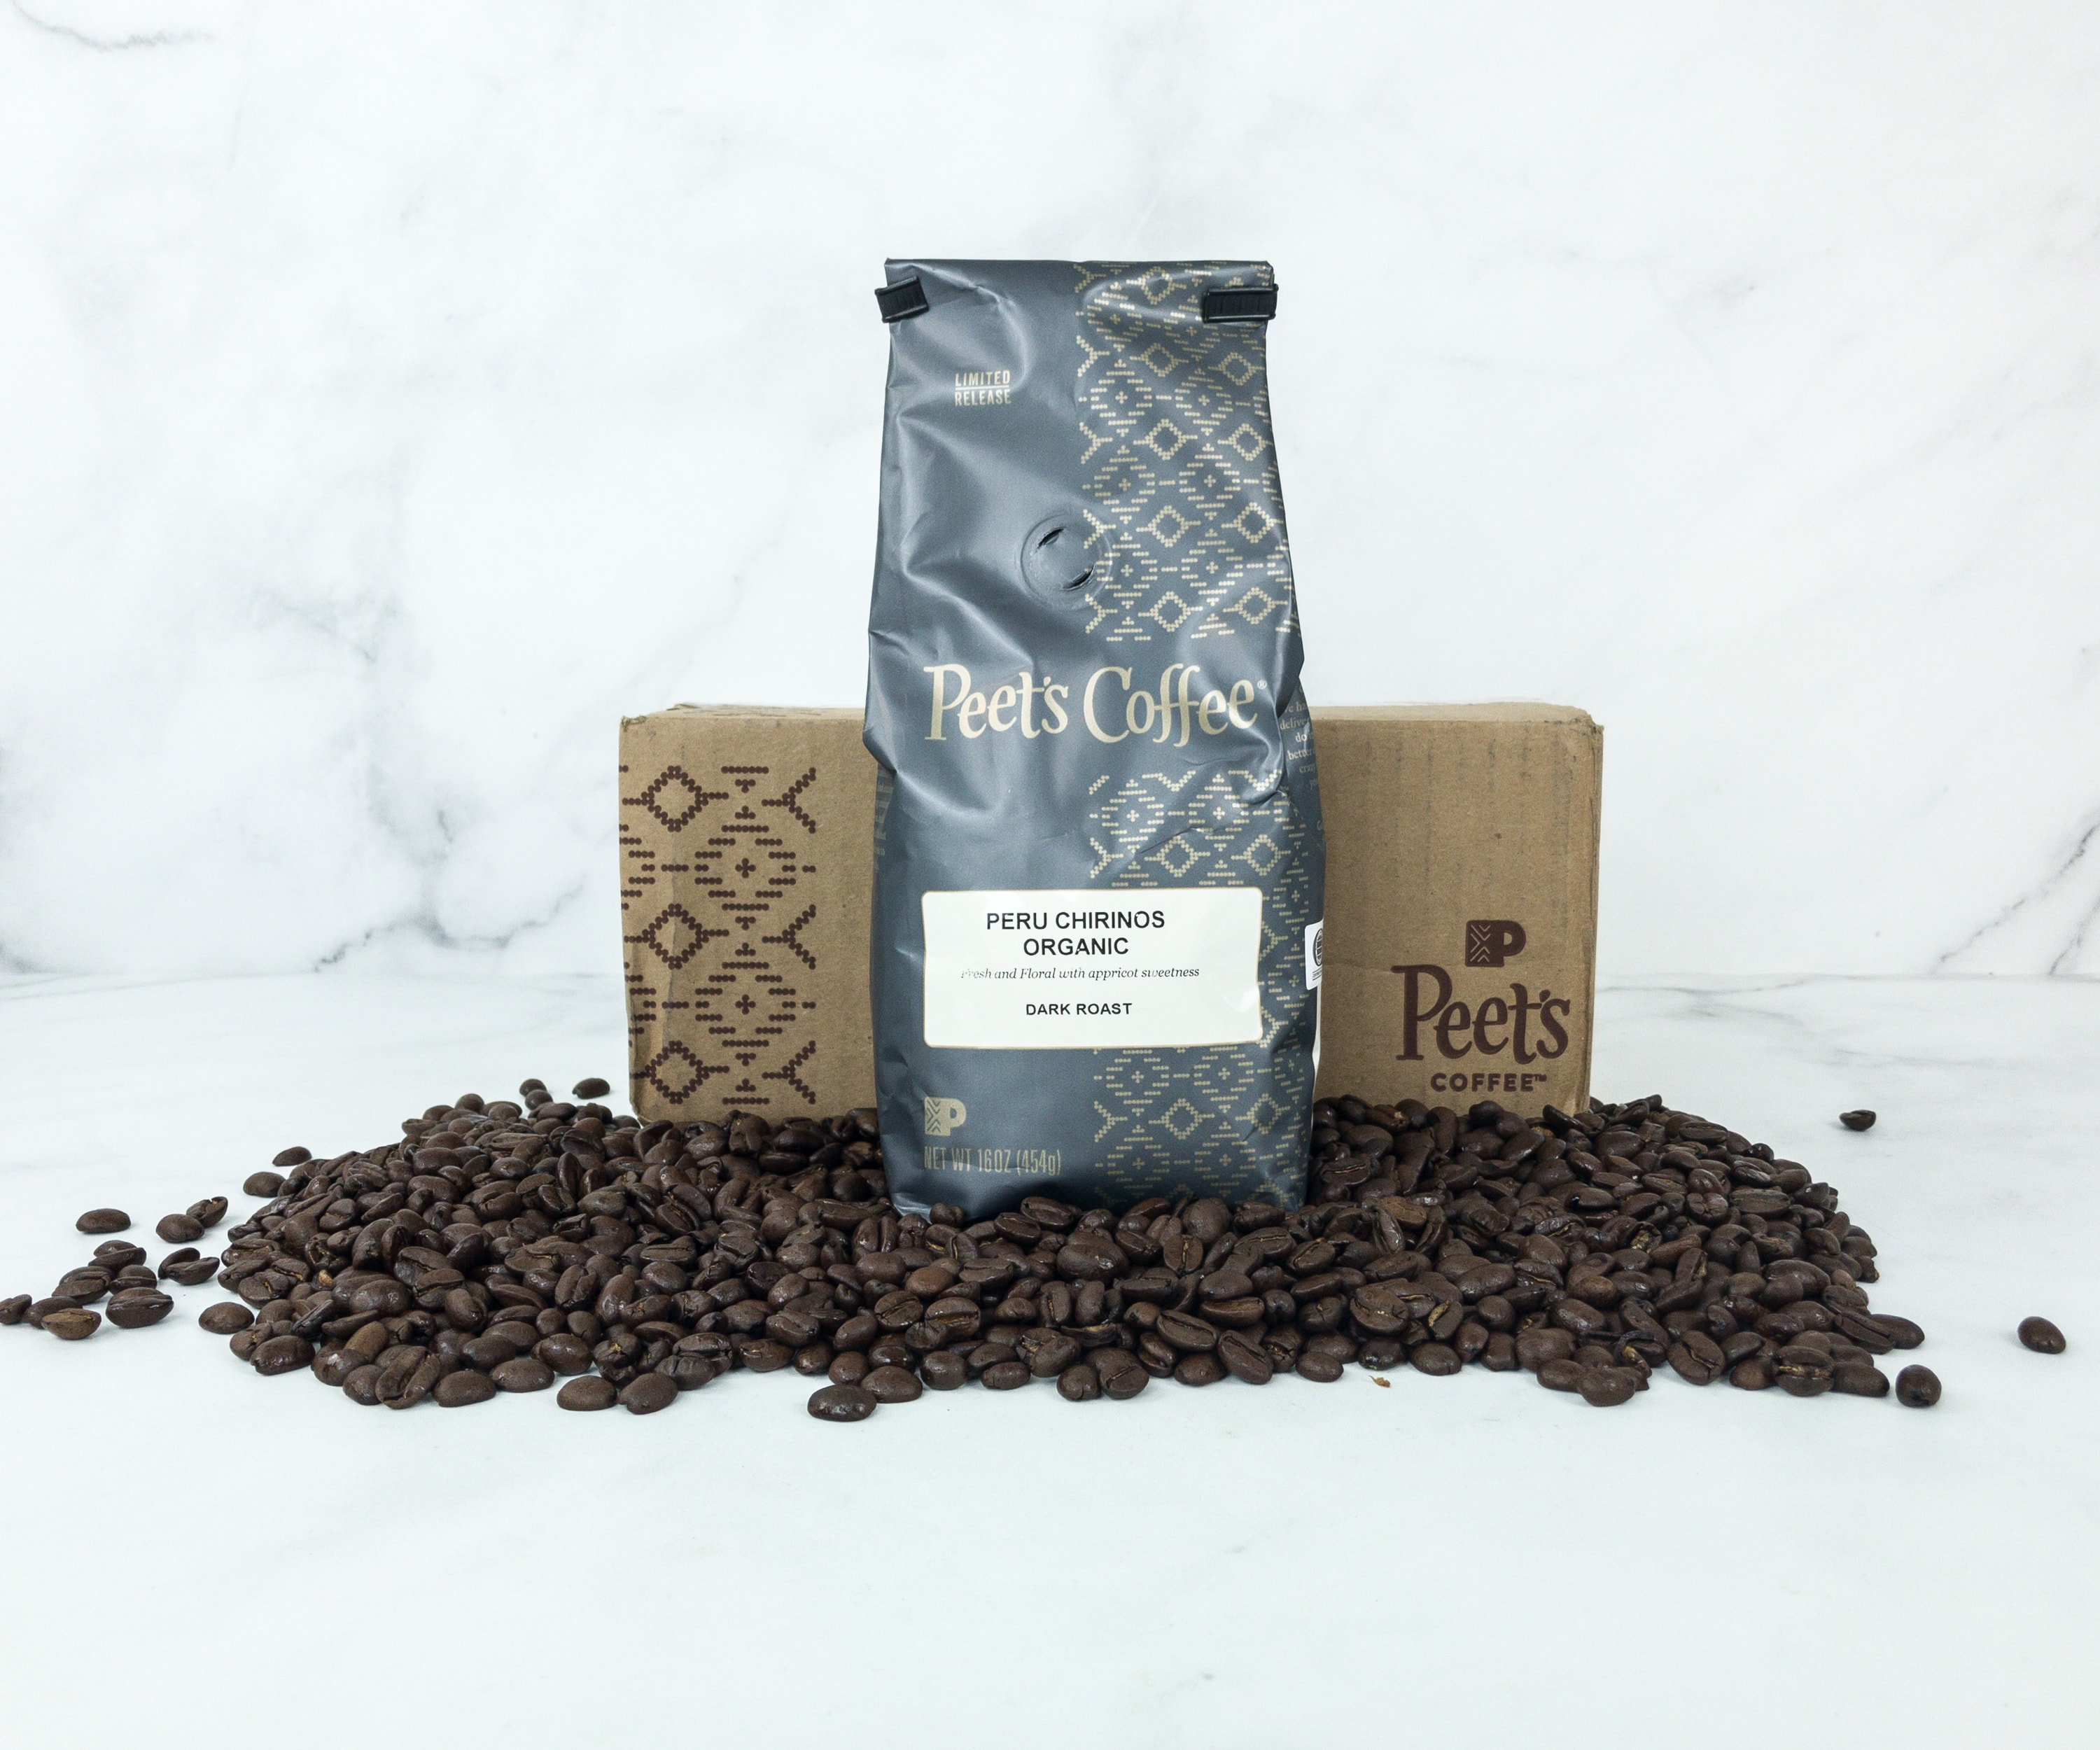 Peet's Coffee Explorer Series February 2019 Subscription Box Review